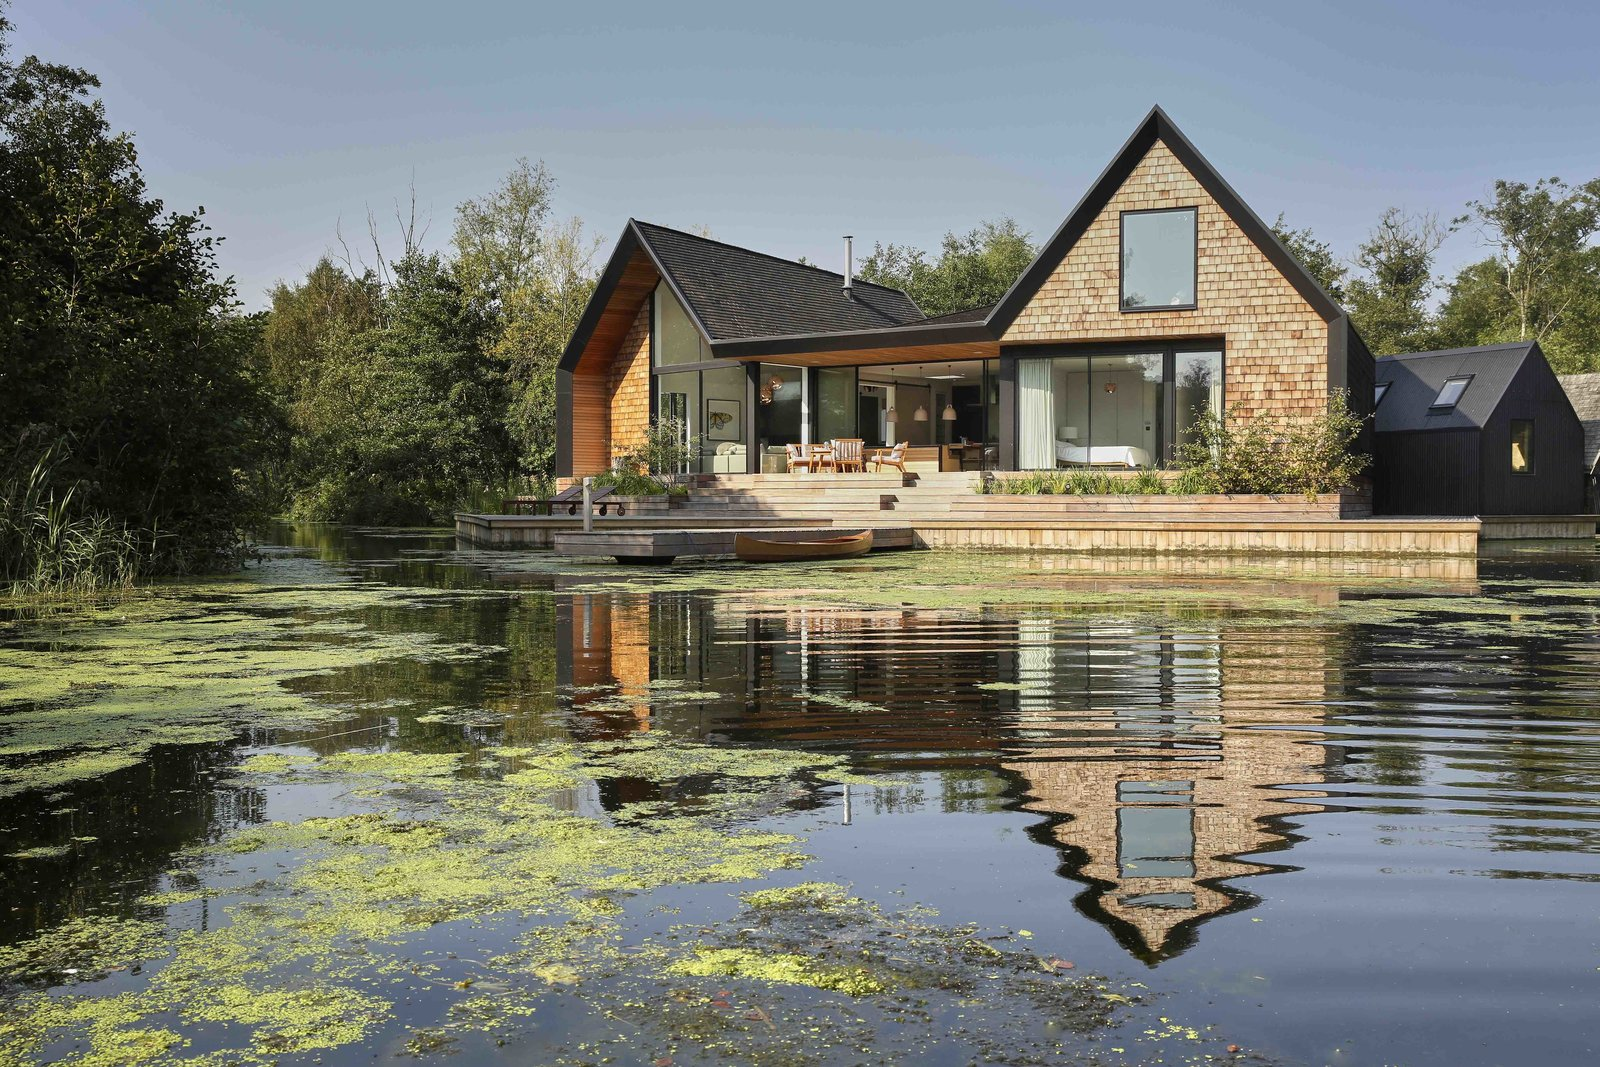 This RIBA award-winning house by Platform 5 Architects has three shingle-clad pitch roof bays that are influenced by Scandinavian lake houses and echoes the form of the local boat sheds. Tagged: Exterior, House, Shingles Roof Material, and Wood Siding Material.  Best Photos from 9 Traditional-Turned-Modern Cottages You Can Rent in the UK